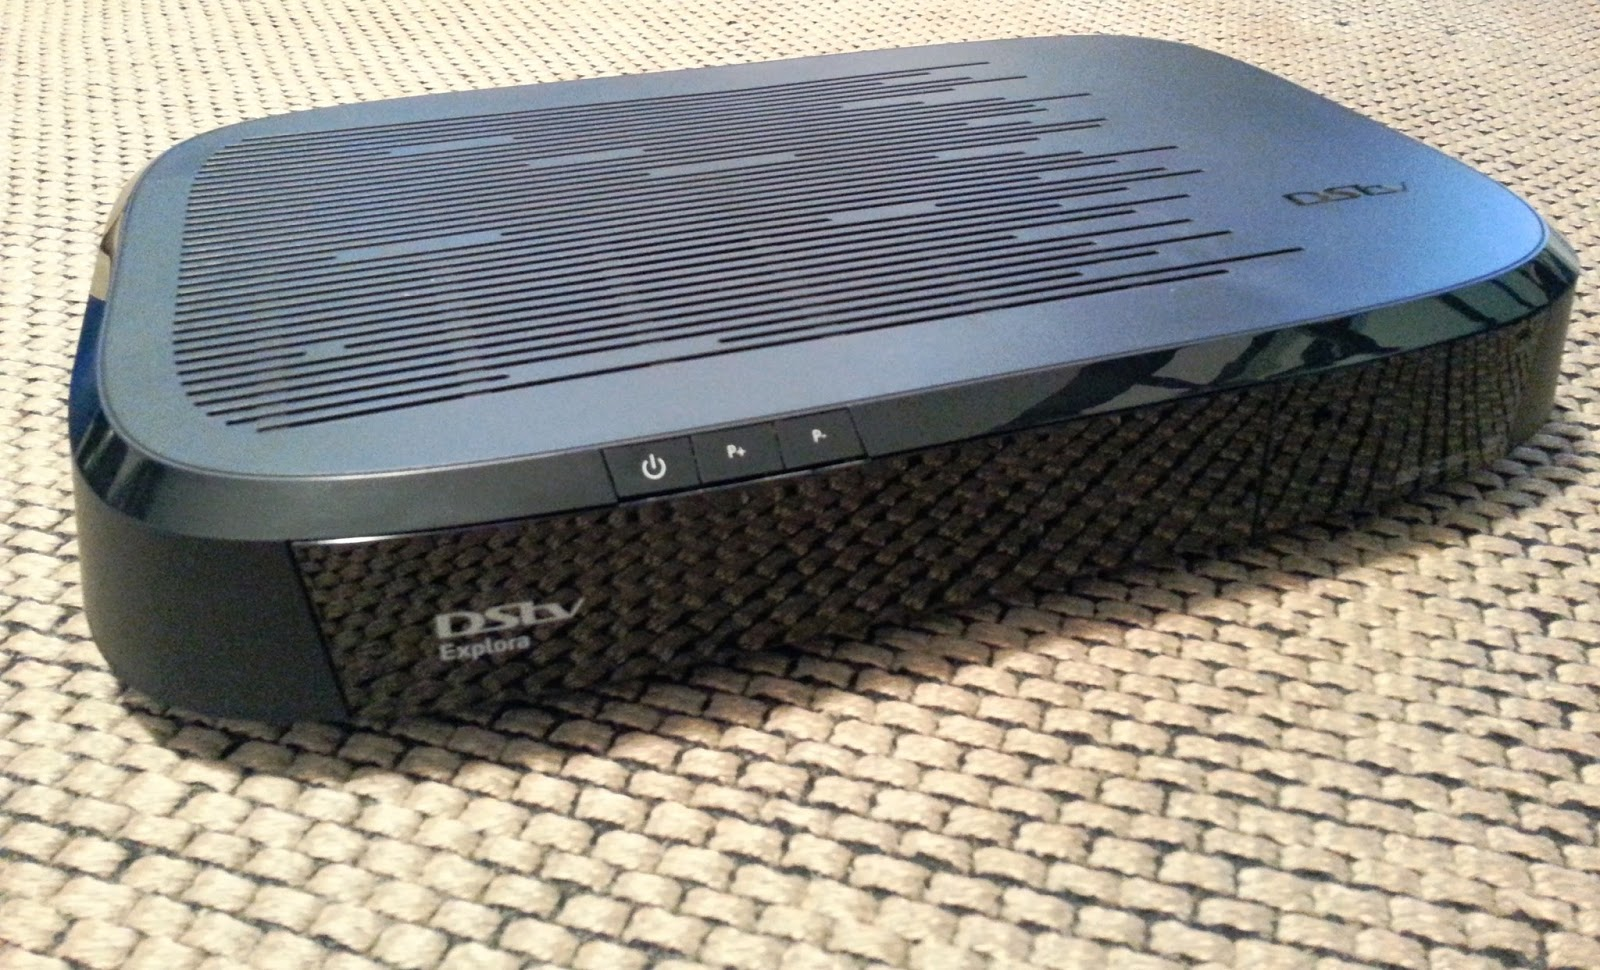 how to set up a shaw central pvr